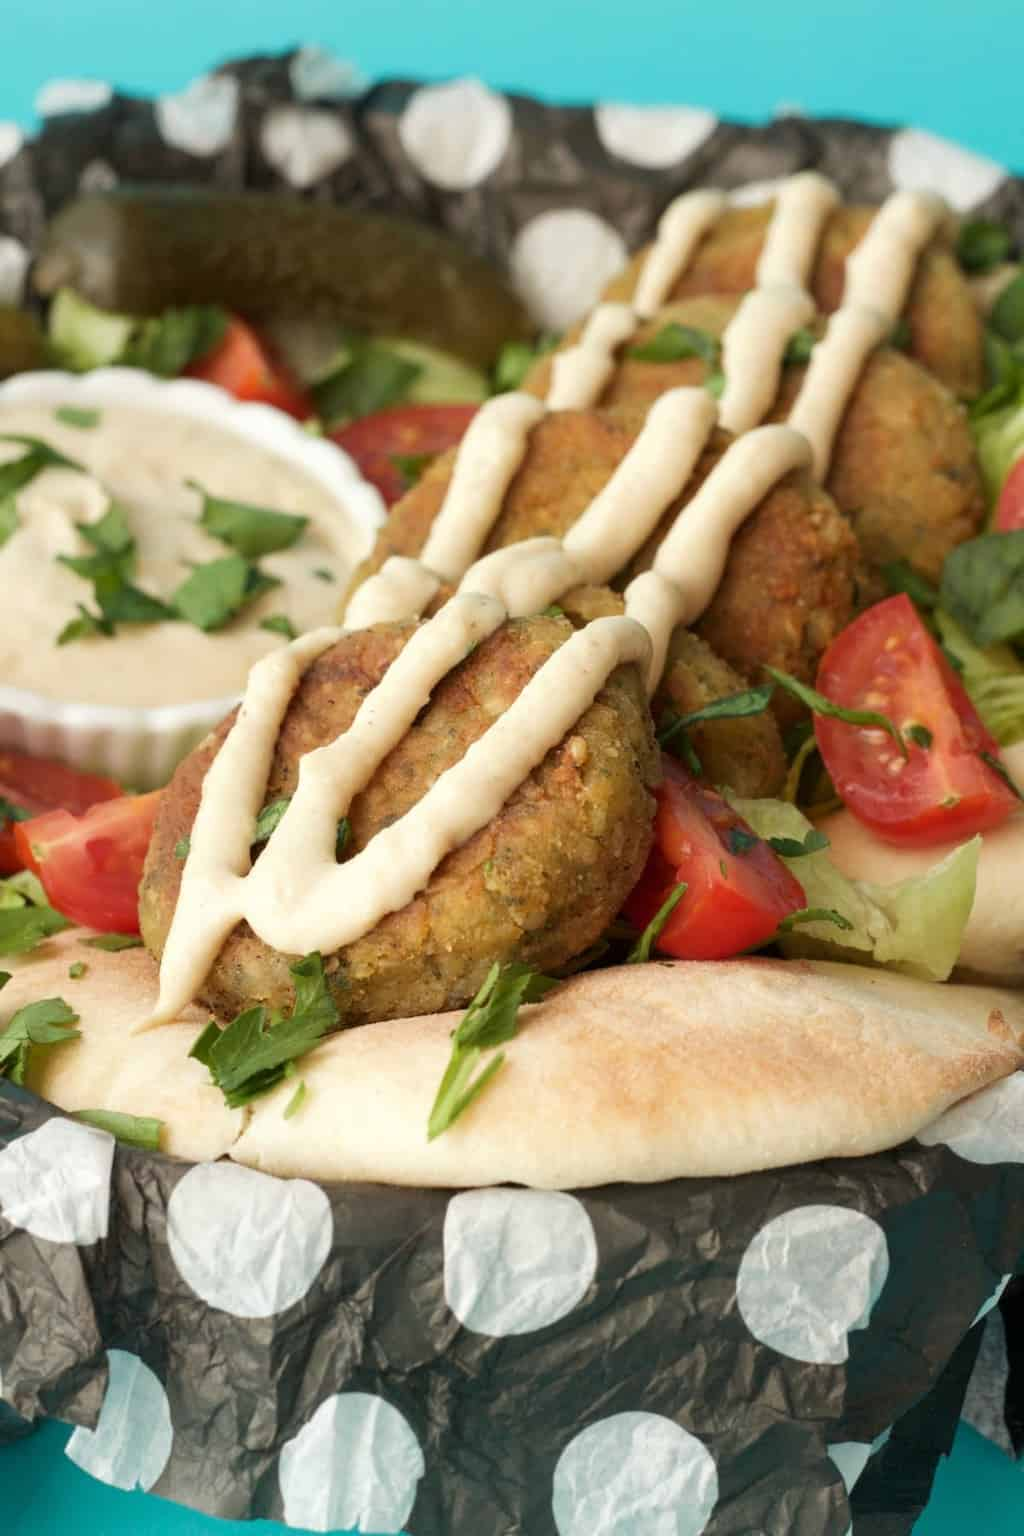 Easy Vegan Falafel Recipe with a Tahini Garlic Sauce! Crispy and perfectly browned. Delicious for a plant-based dinner! #vegan #lovingitvegan #veganfalafel #entree #dinner